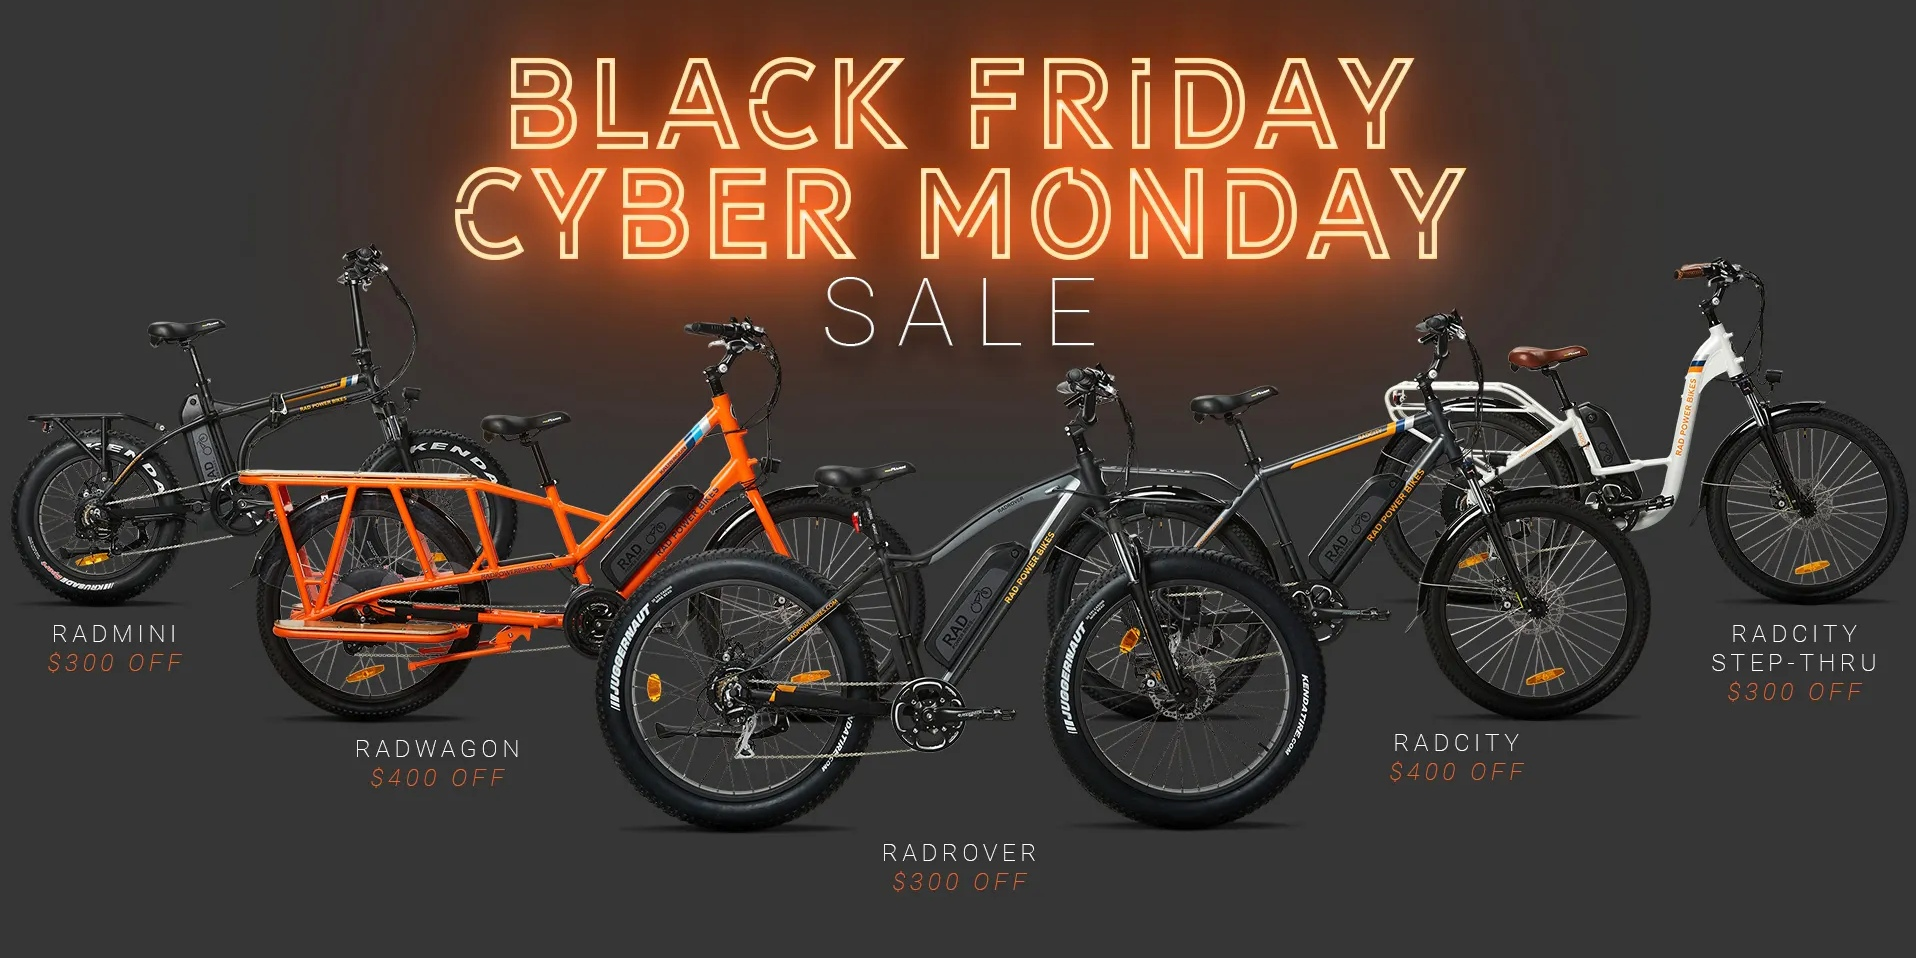 Black Friday Electric Bicycle Shopping Guide Preview Here Are The